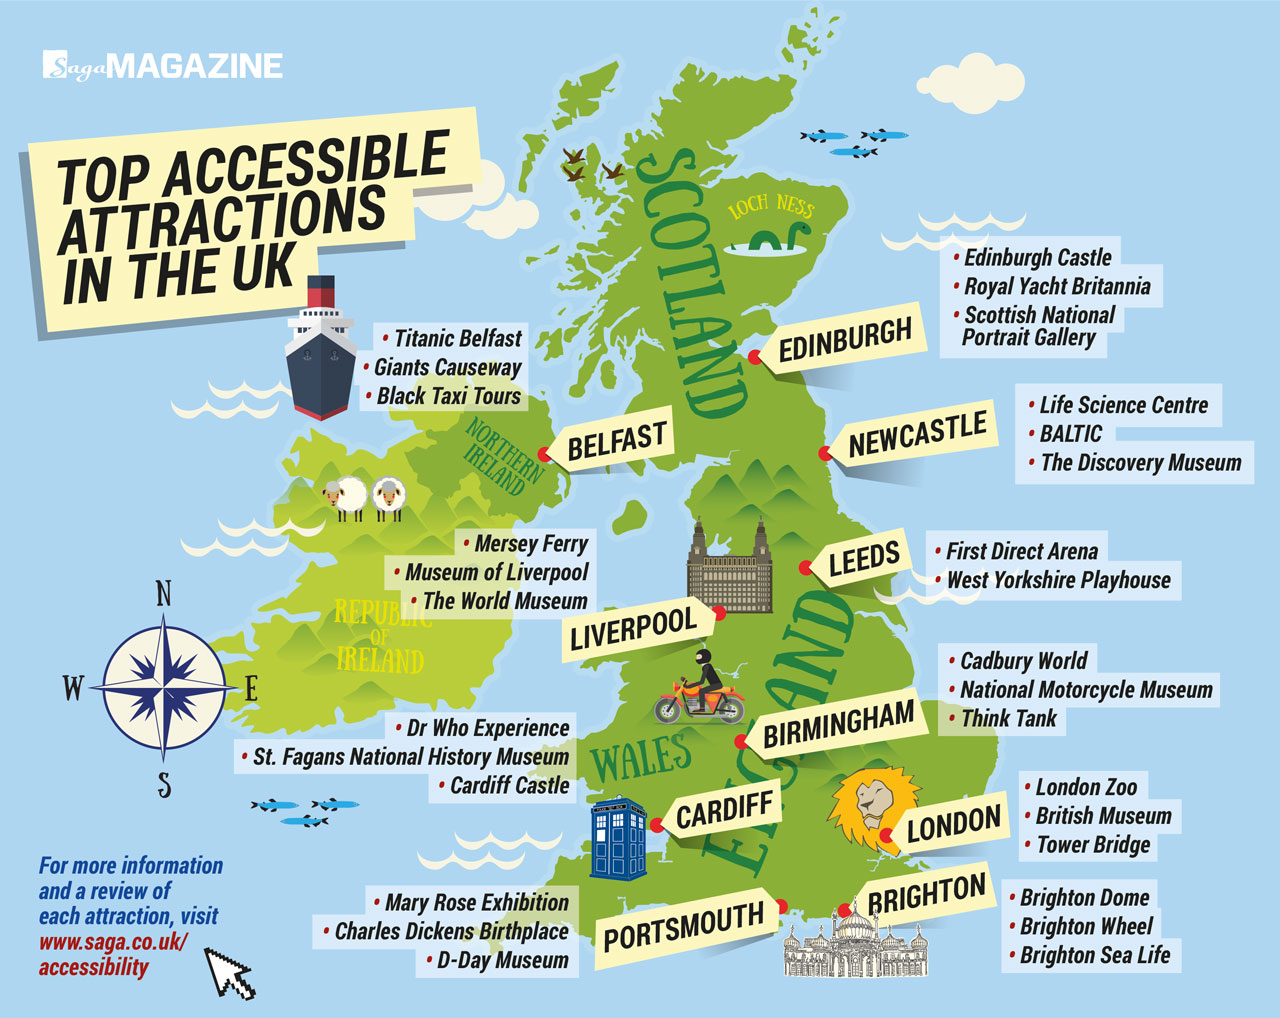 SAGA Magazines List of Top Accessible Attractions in the UK